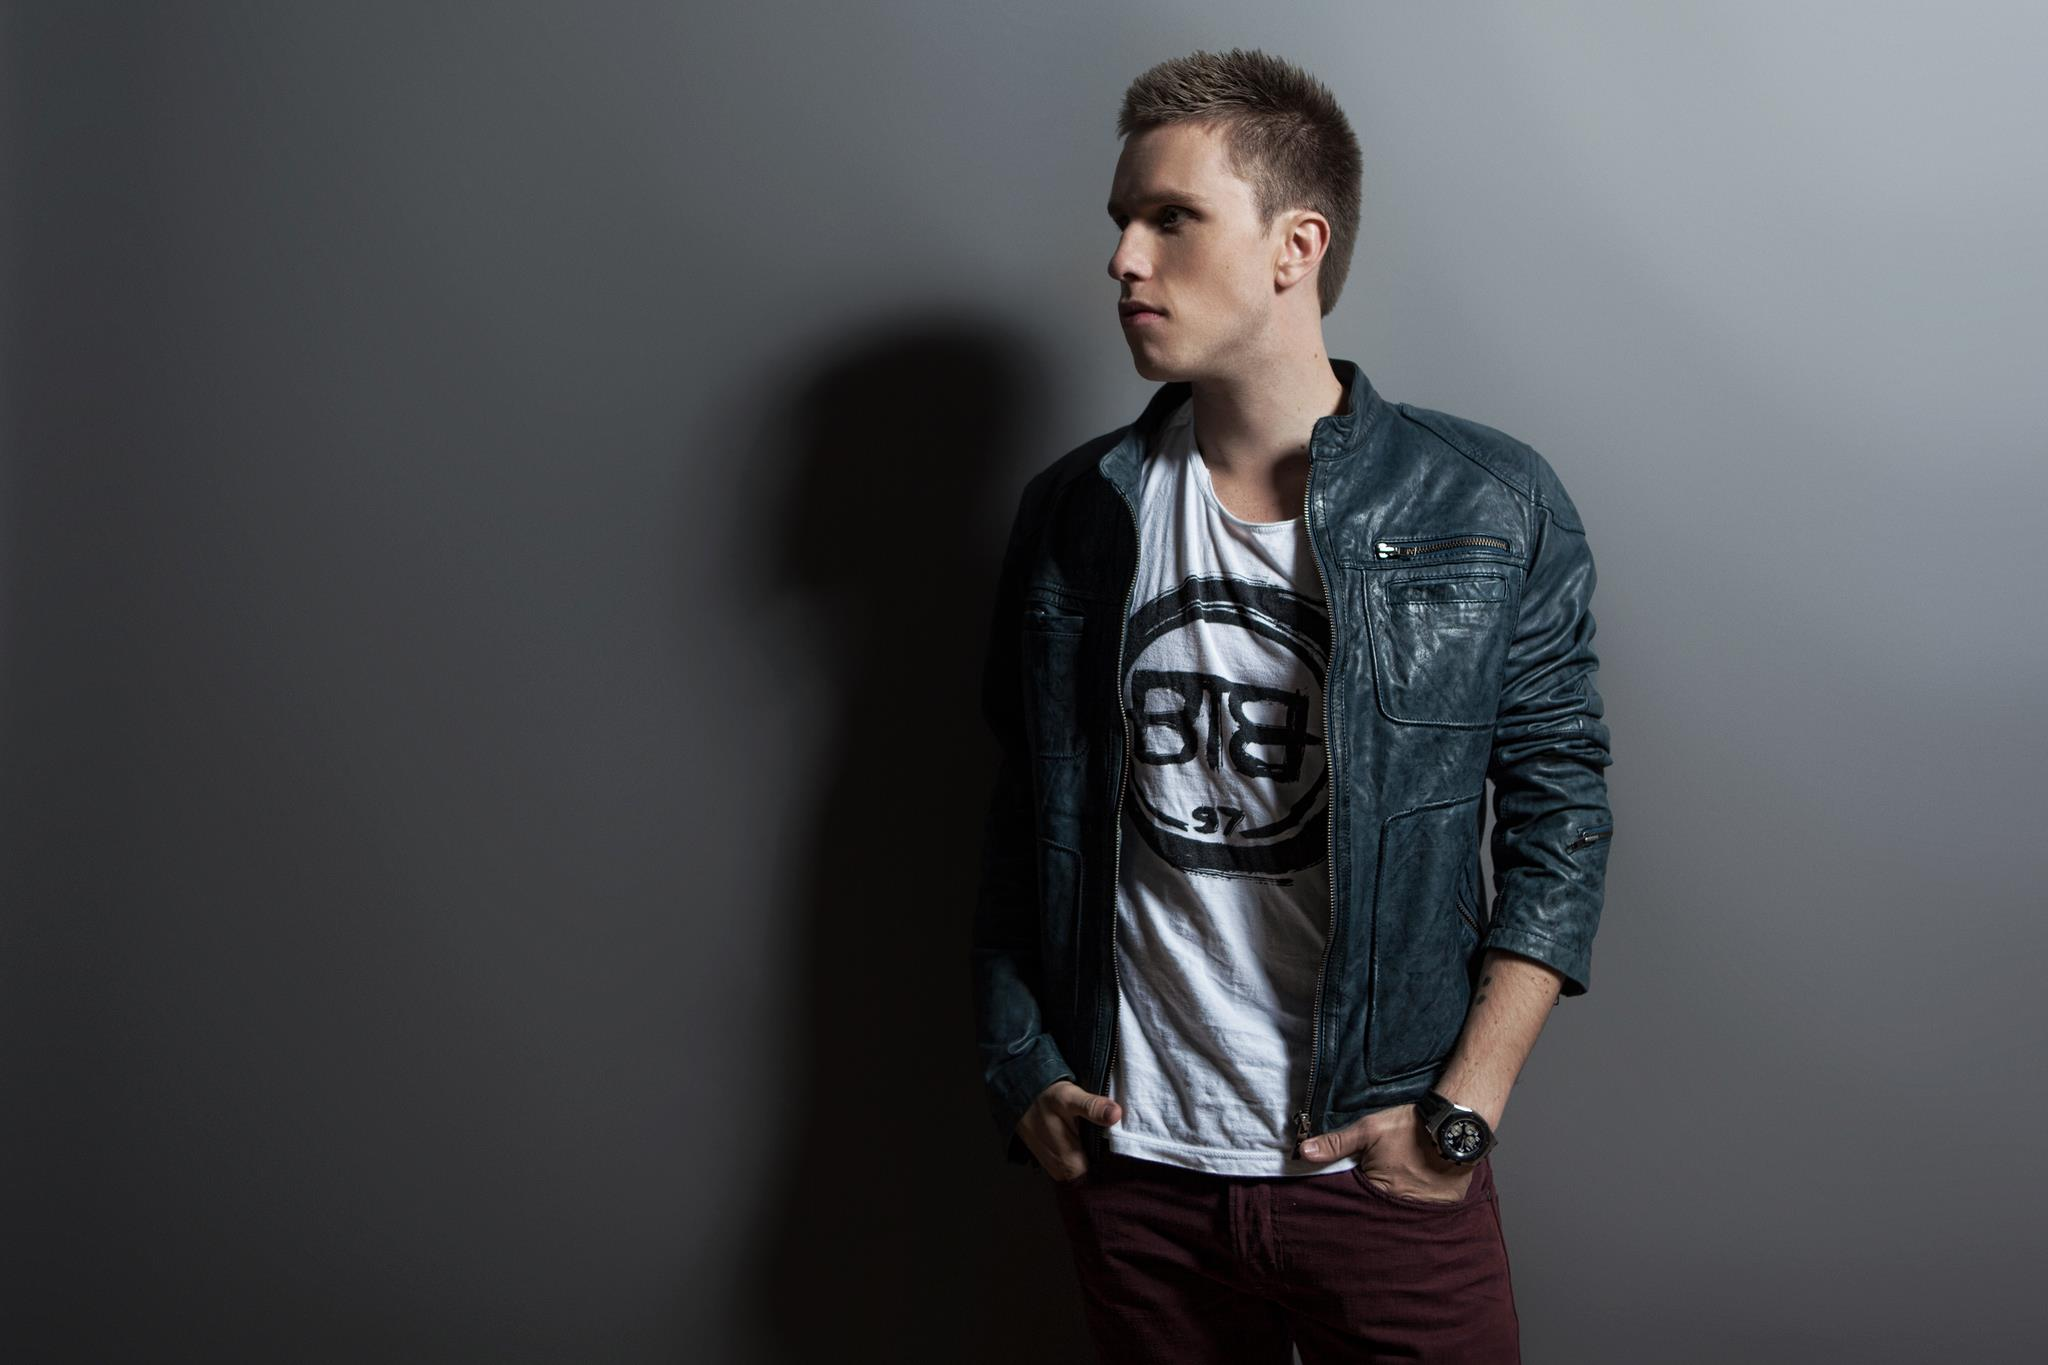 Discount Tickets to Nicky Romero